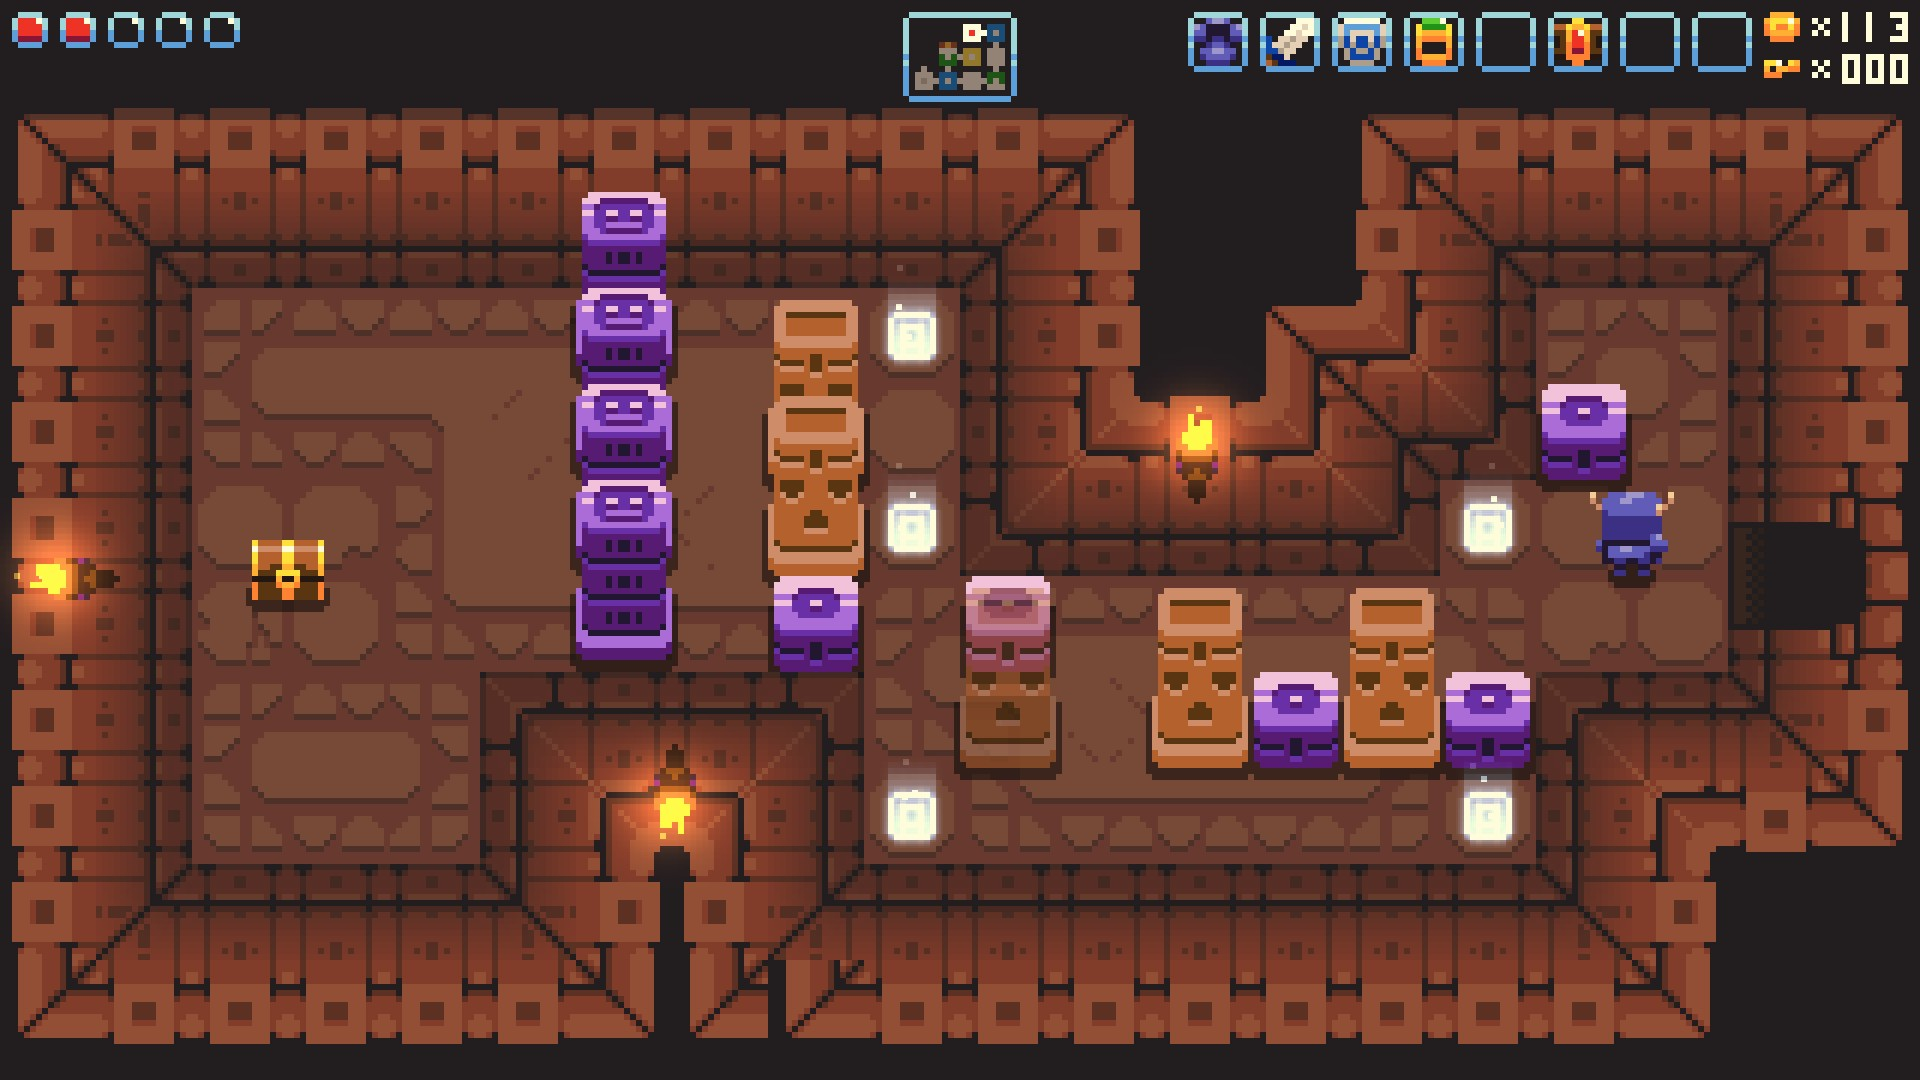 This particular block puzzle gave me some trouble. You have to push the blocks onto the lighted tiles.